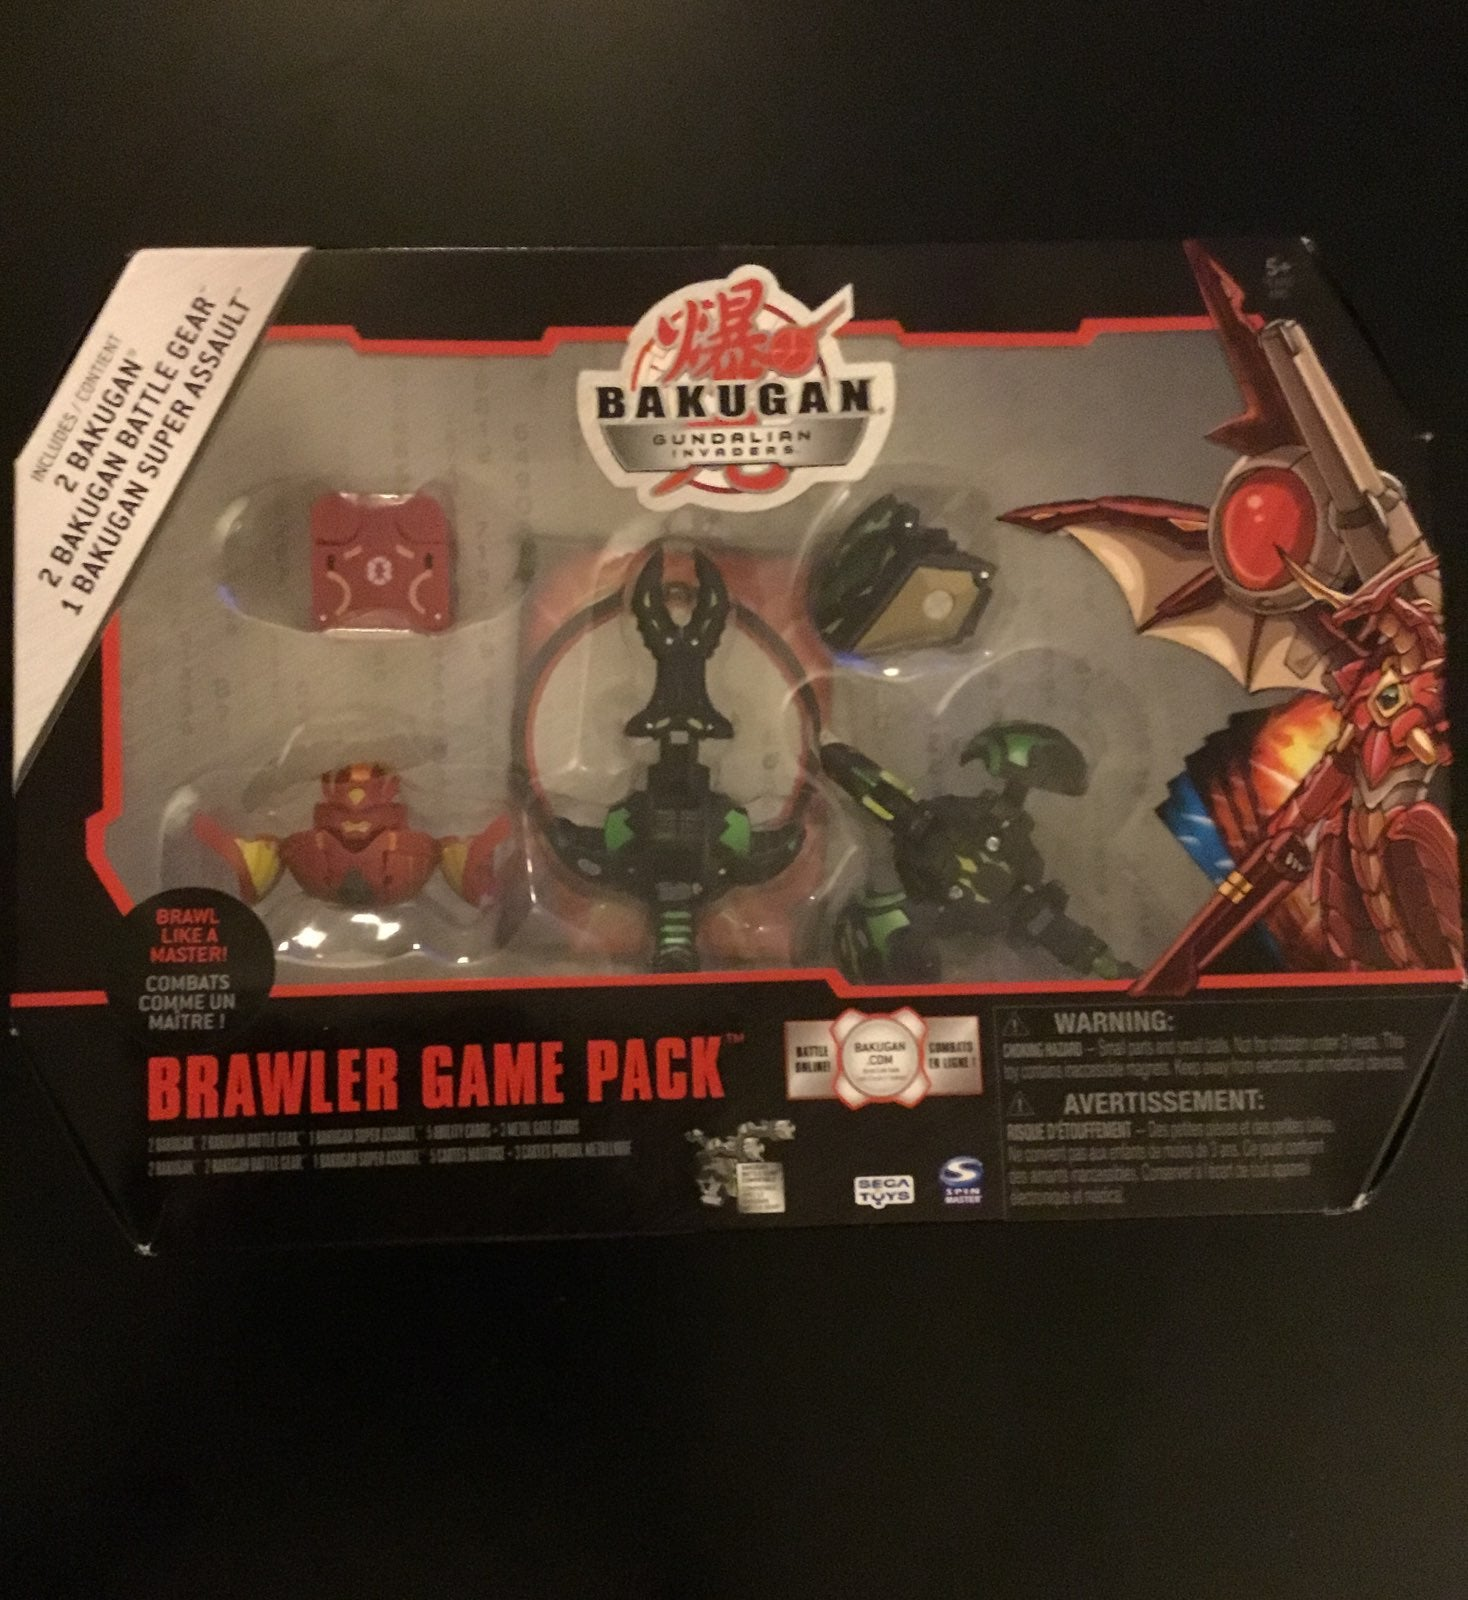 Bakugan Gundalian Invaders Brawler game